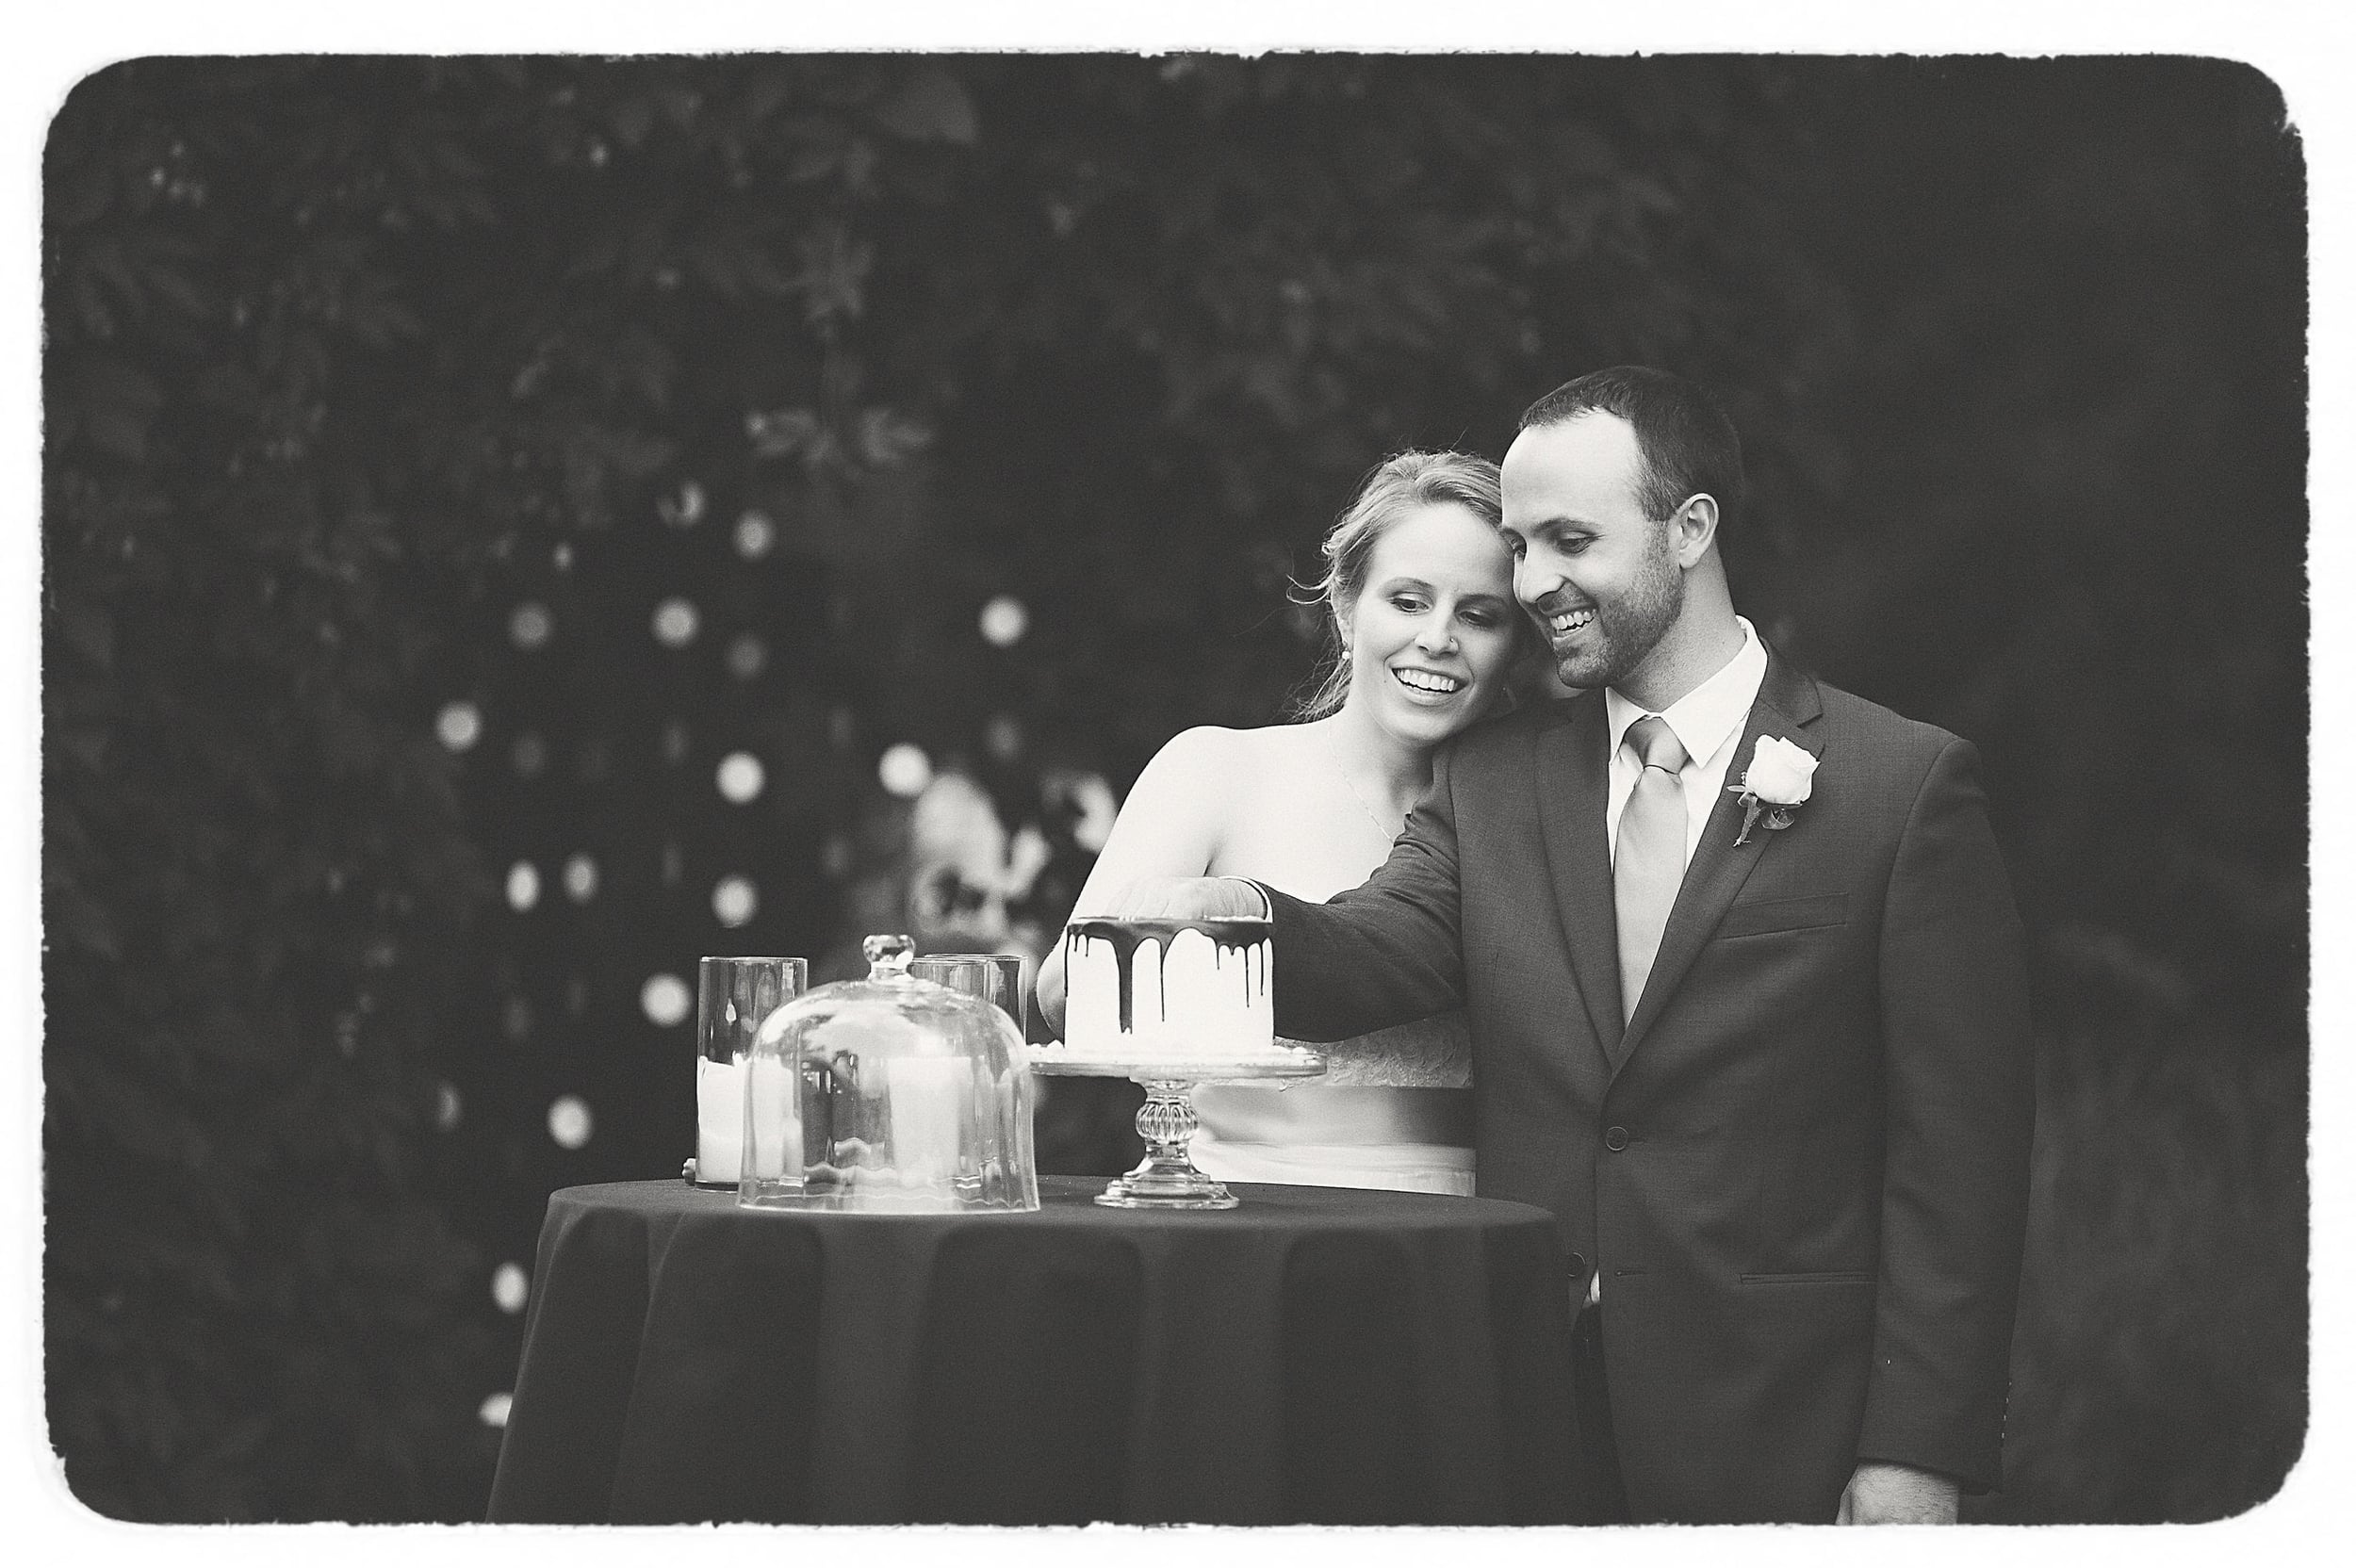 589 Kate&Marc-Wedding-B&WCollection-589Film.jpg